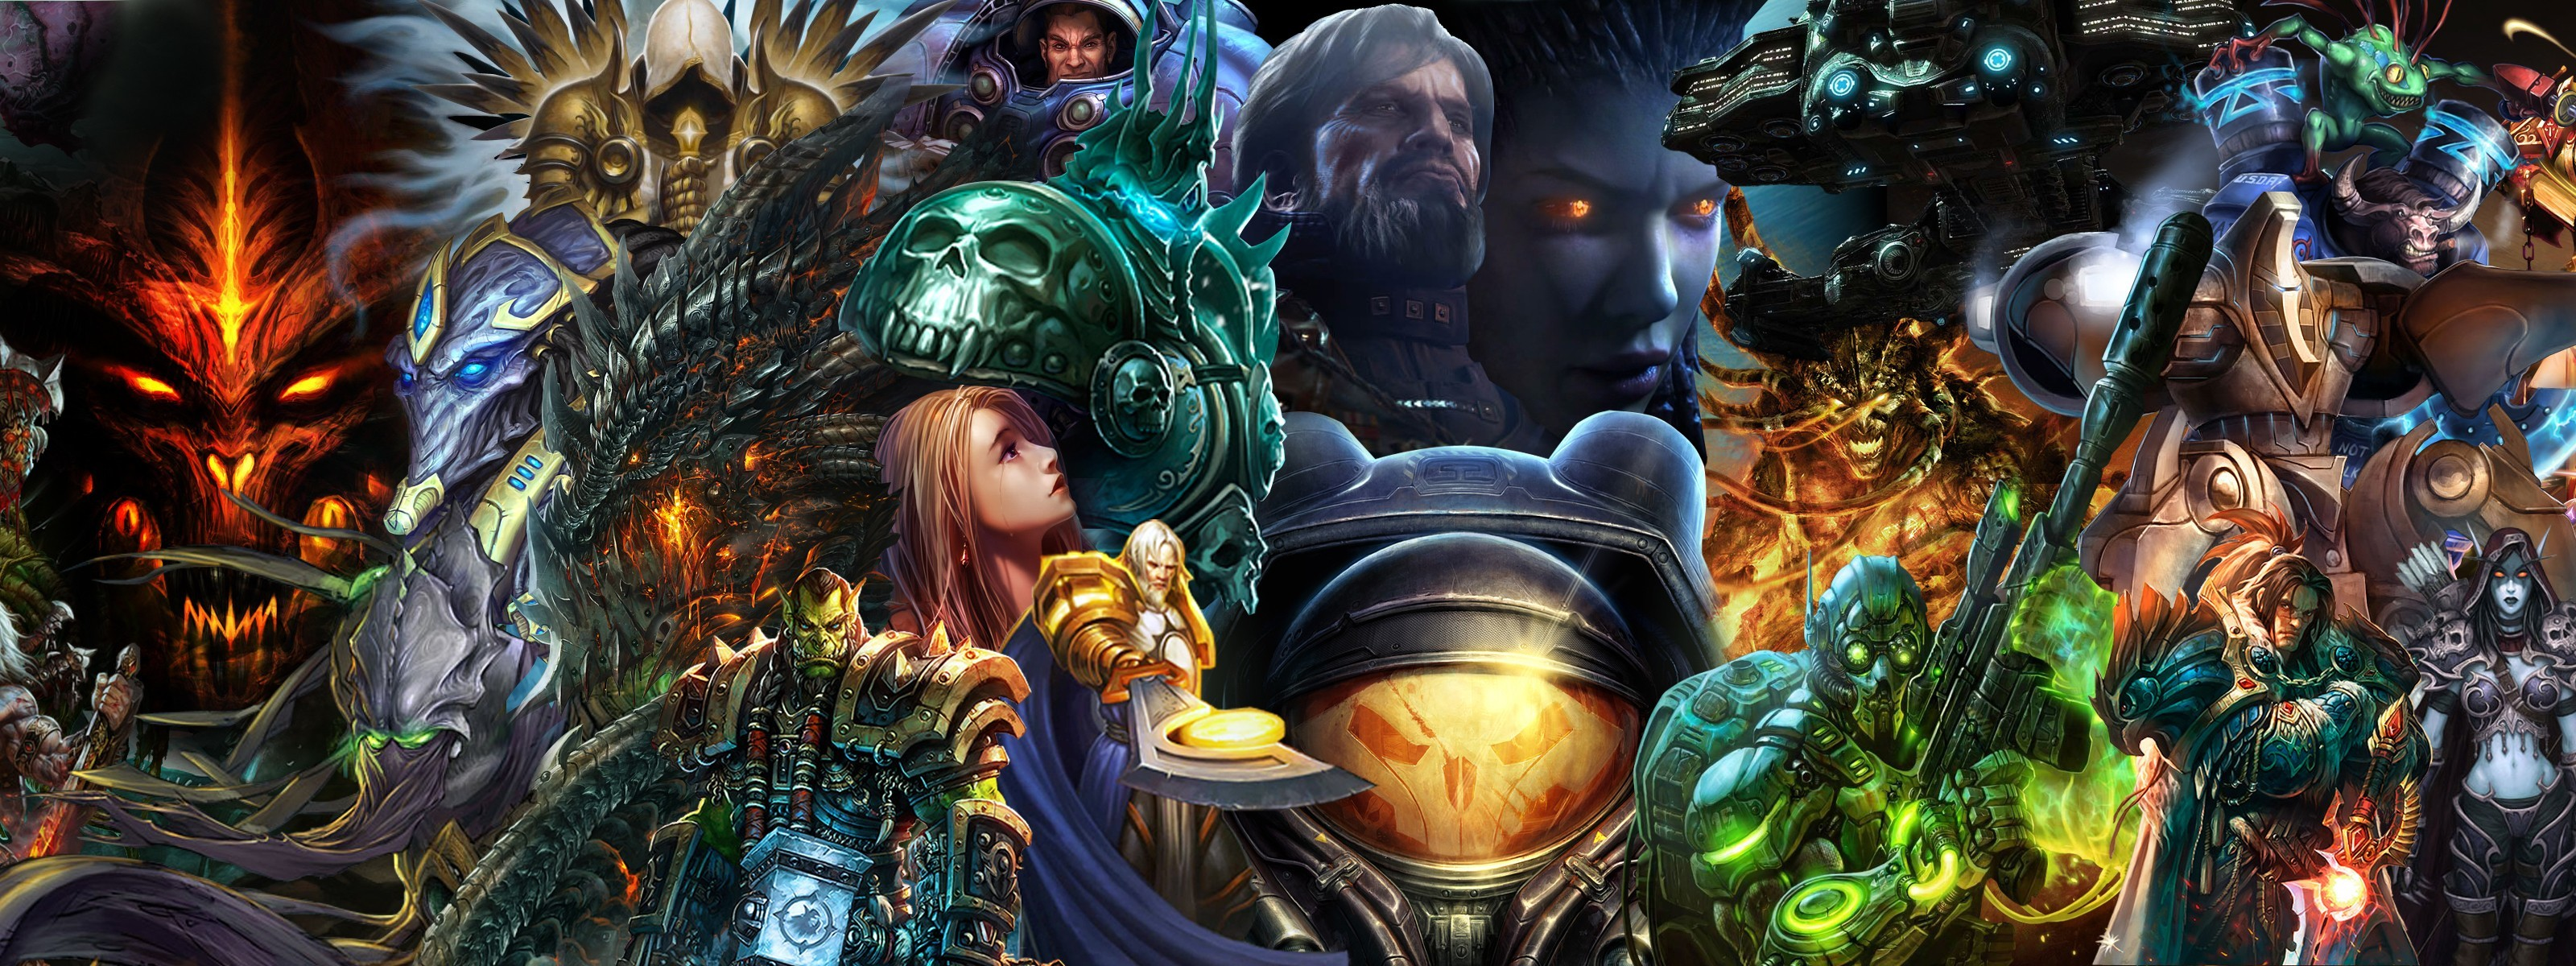 3200x1200 blizzard Diablo World of Warcraft Starcraft characters fantasy dual  wallpaper